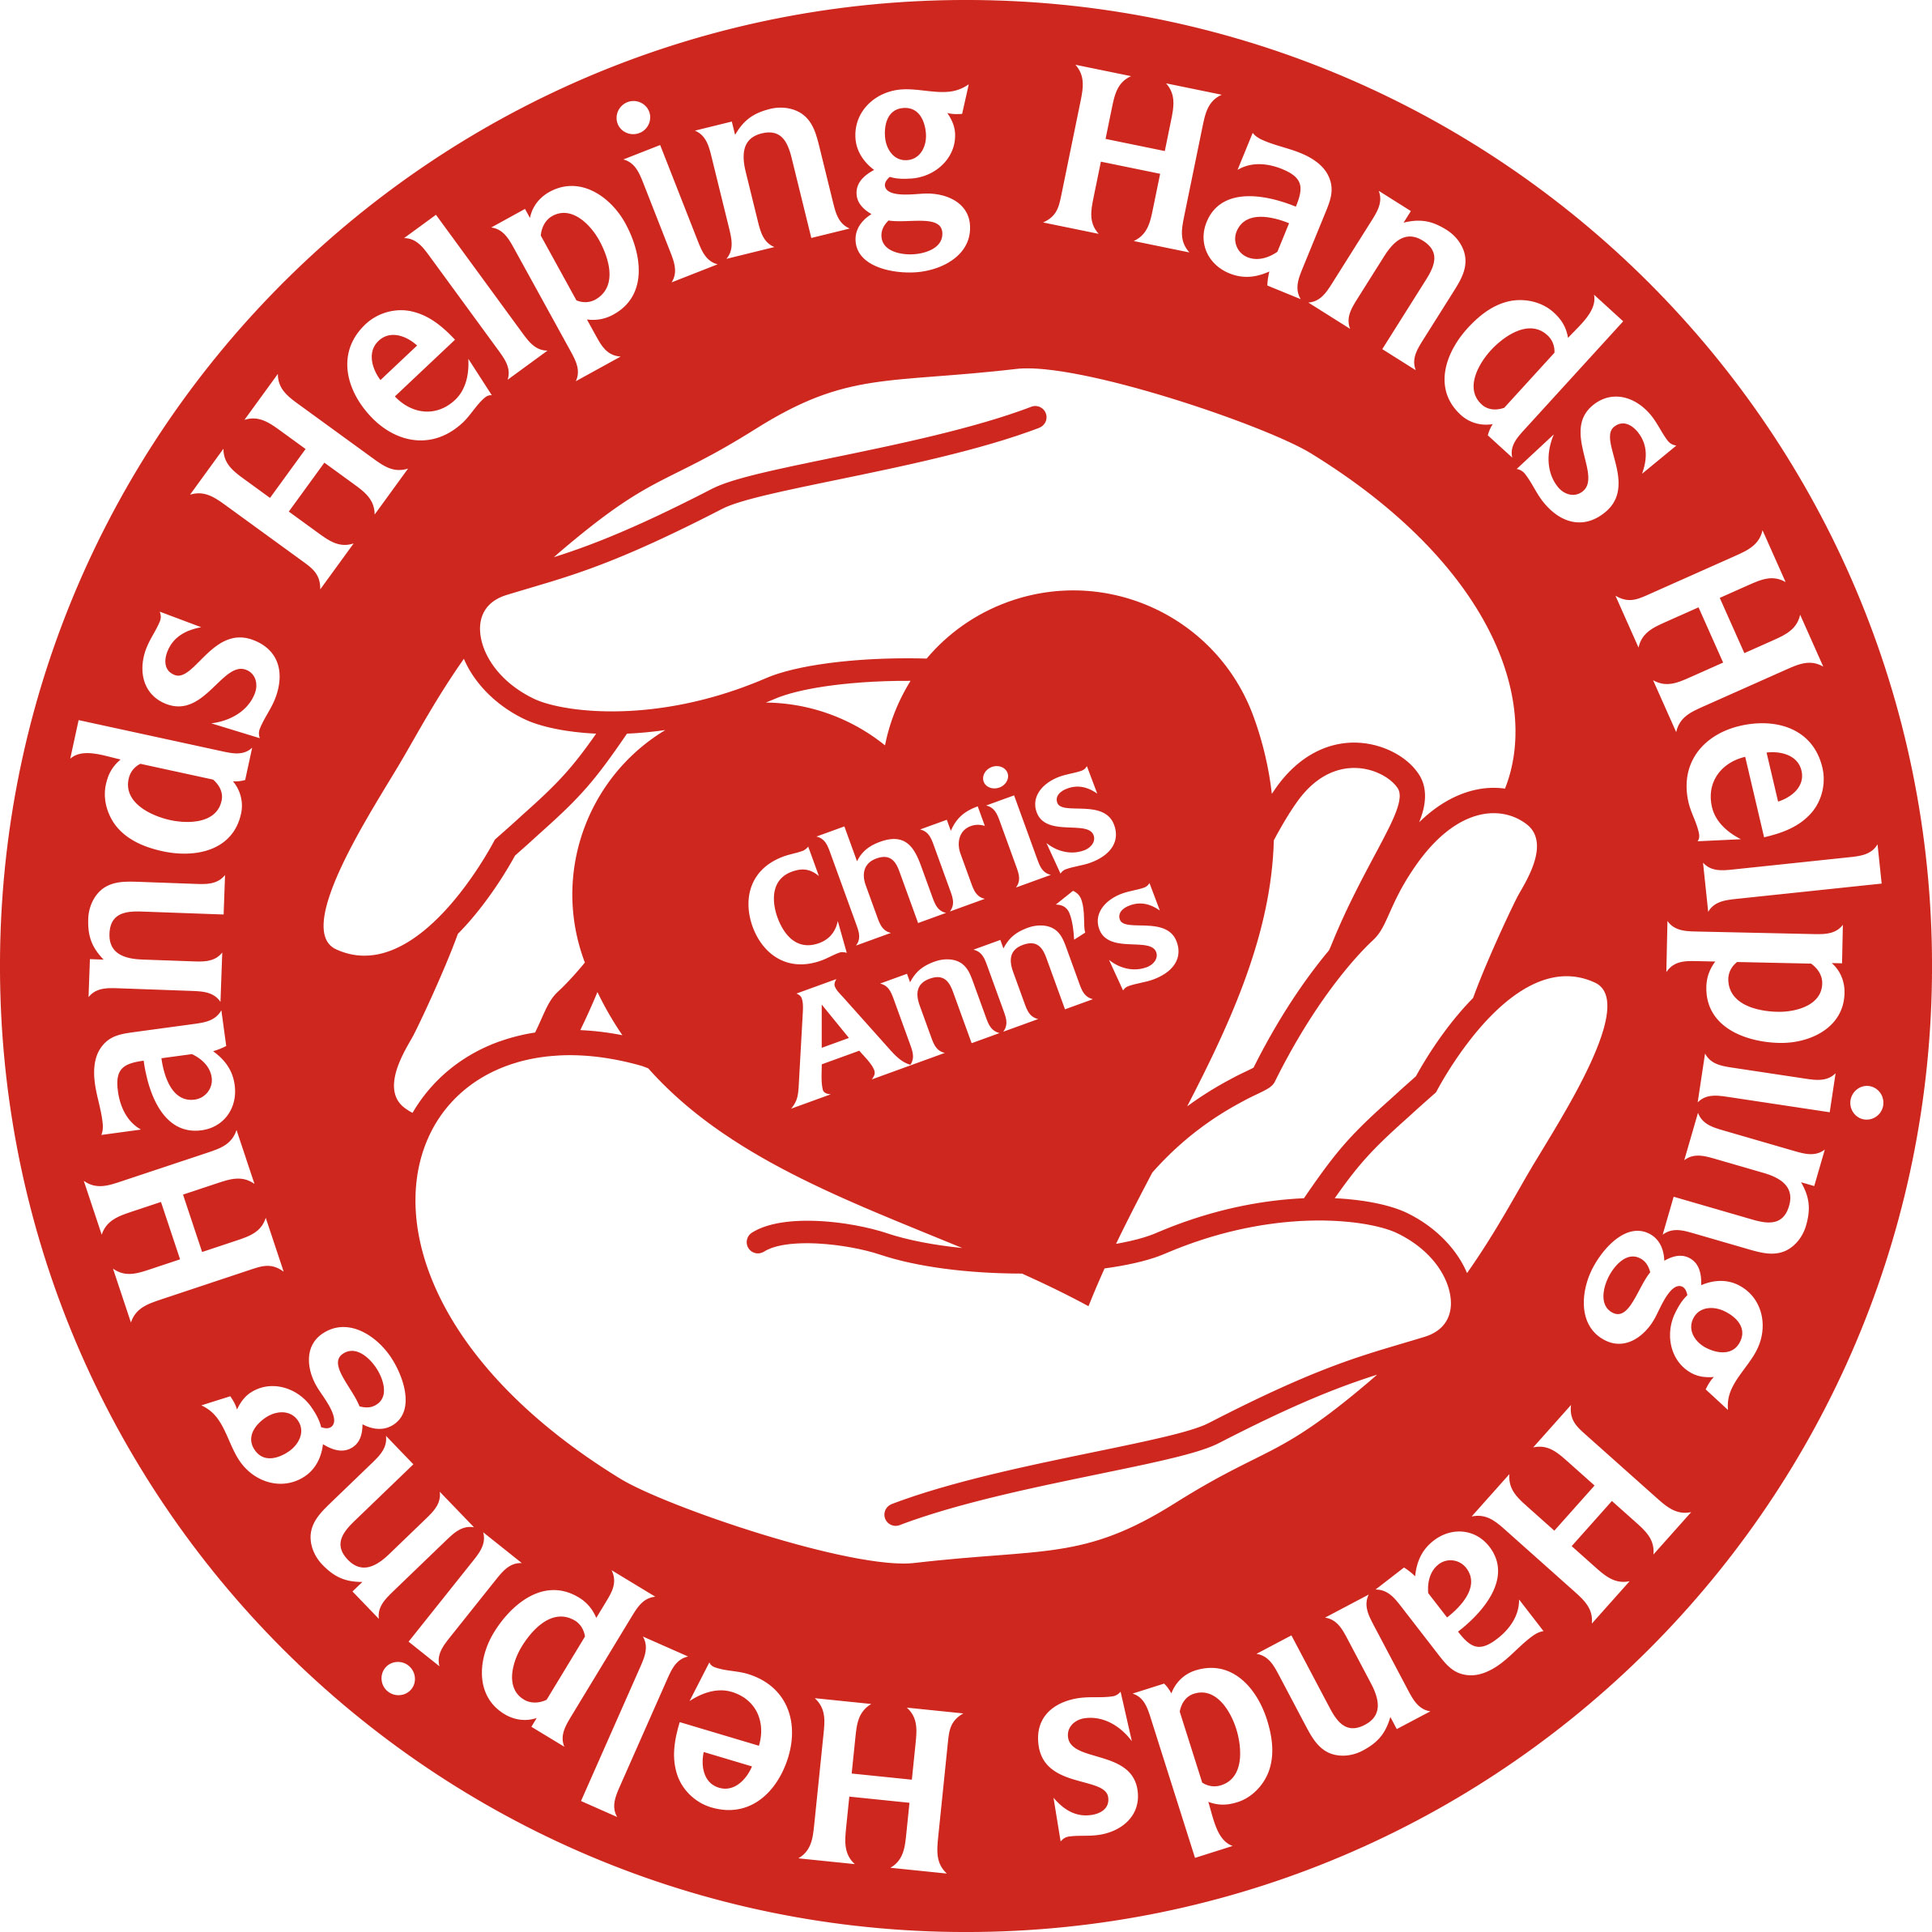 Chris Ann's Helping Hands 406 Interchange N, Lake Geneva